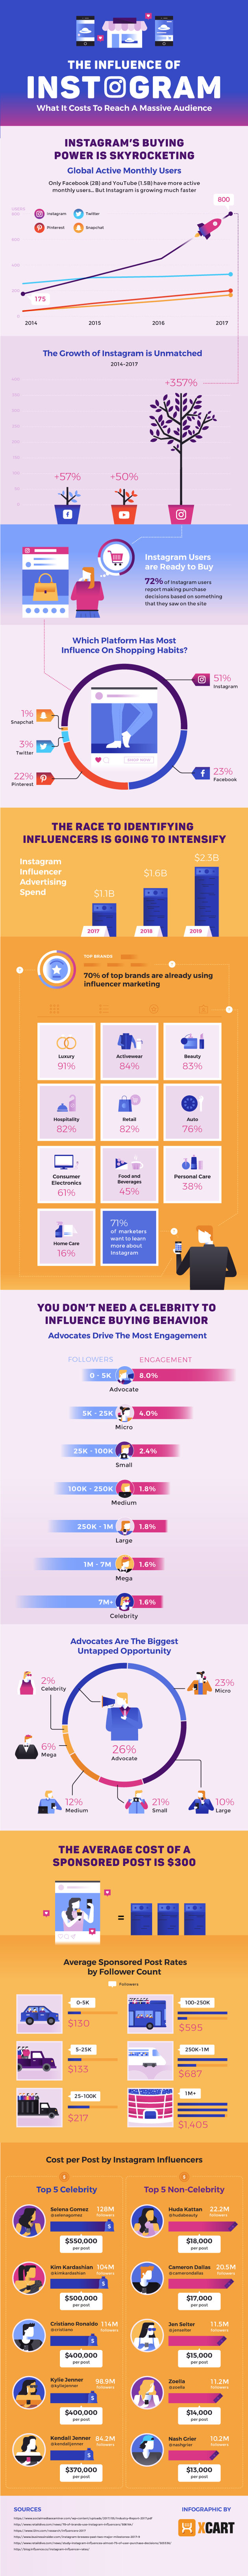 181011-infographic-influence-instagram-what-it-costs